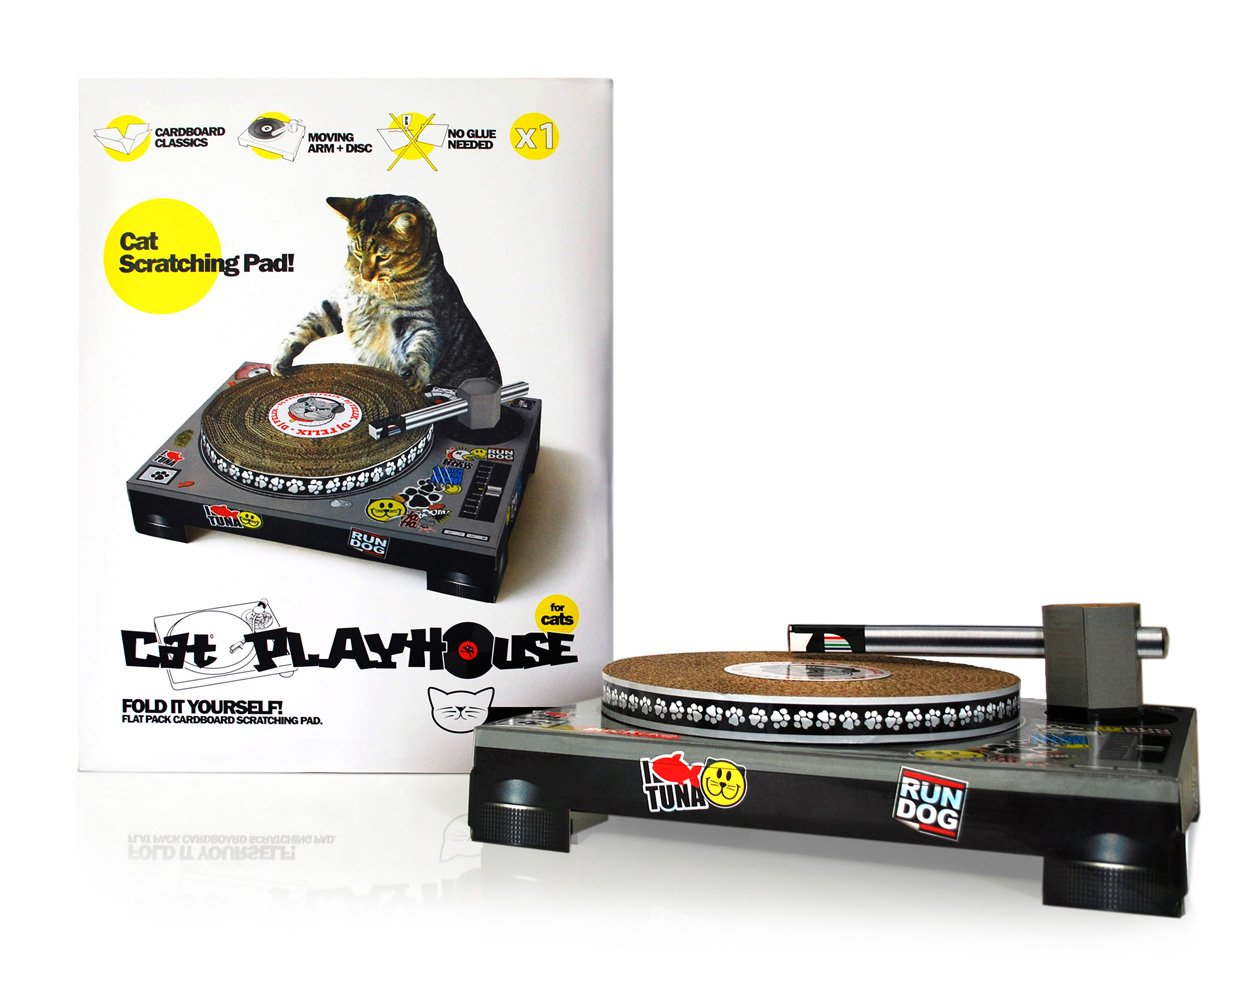 Amazoncom SUCK UK Cat Scratching DJ Deck Scratching Posts - This company makes cardboard tanks houses and planes for cats and theyre perfect